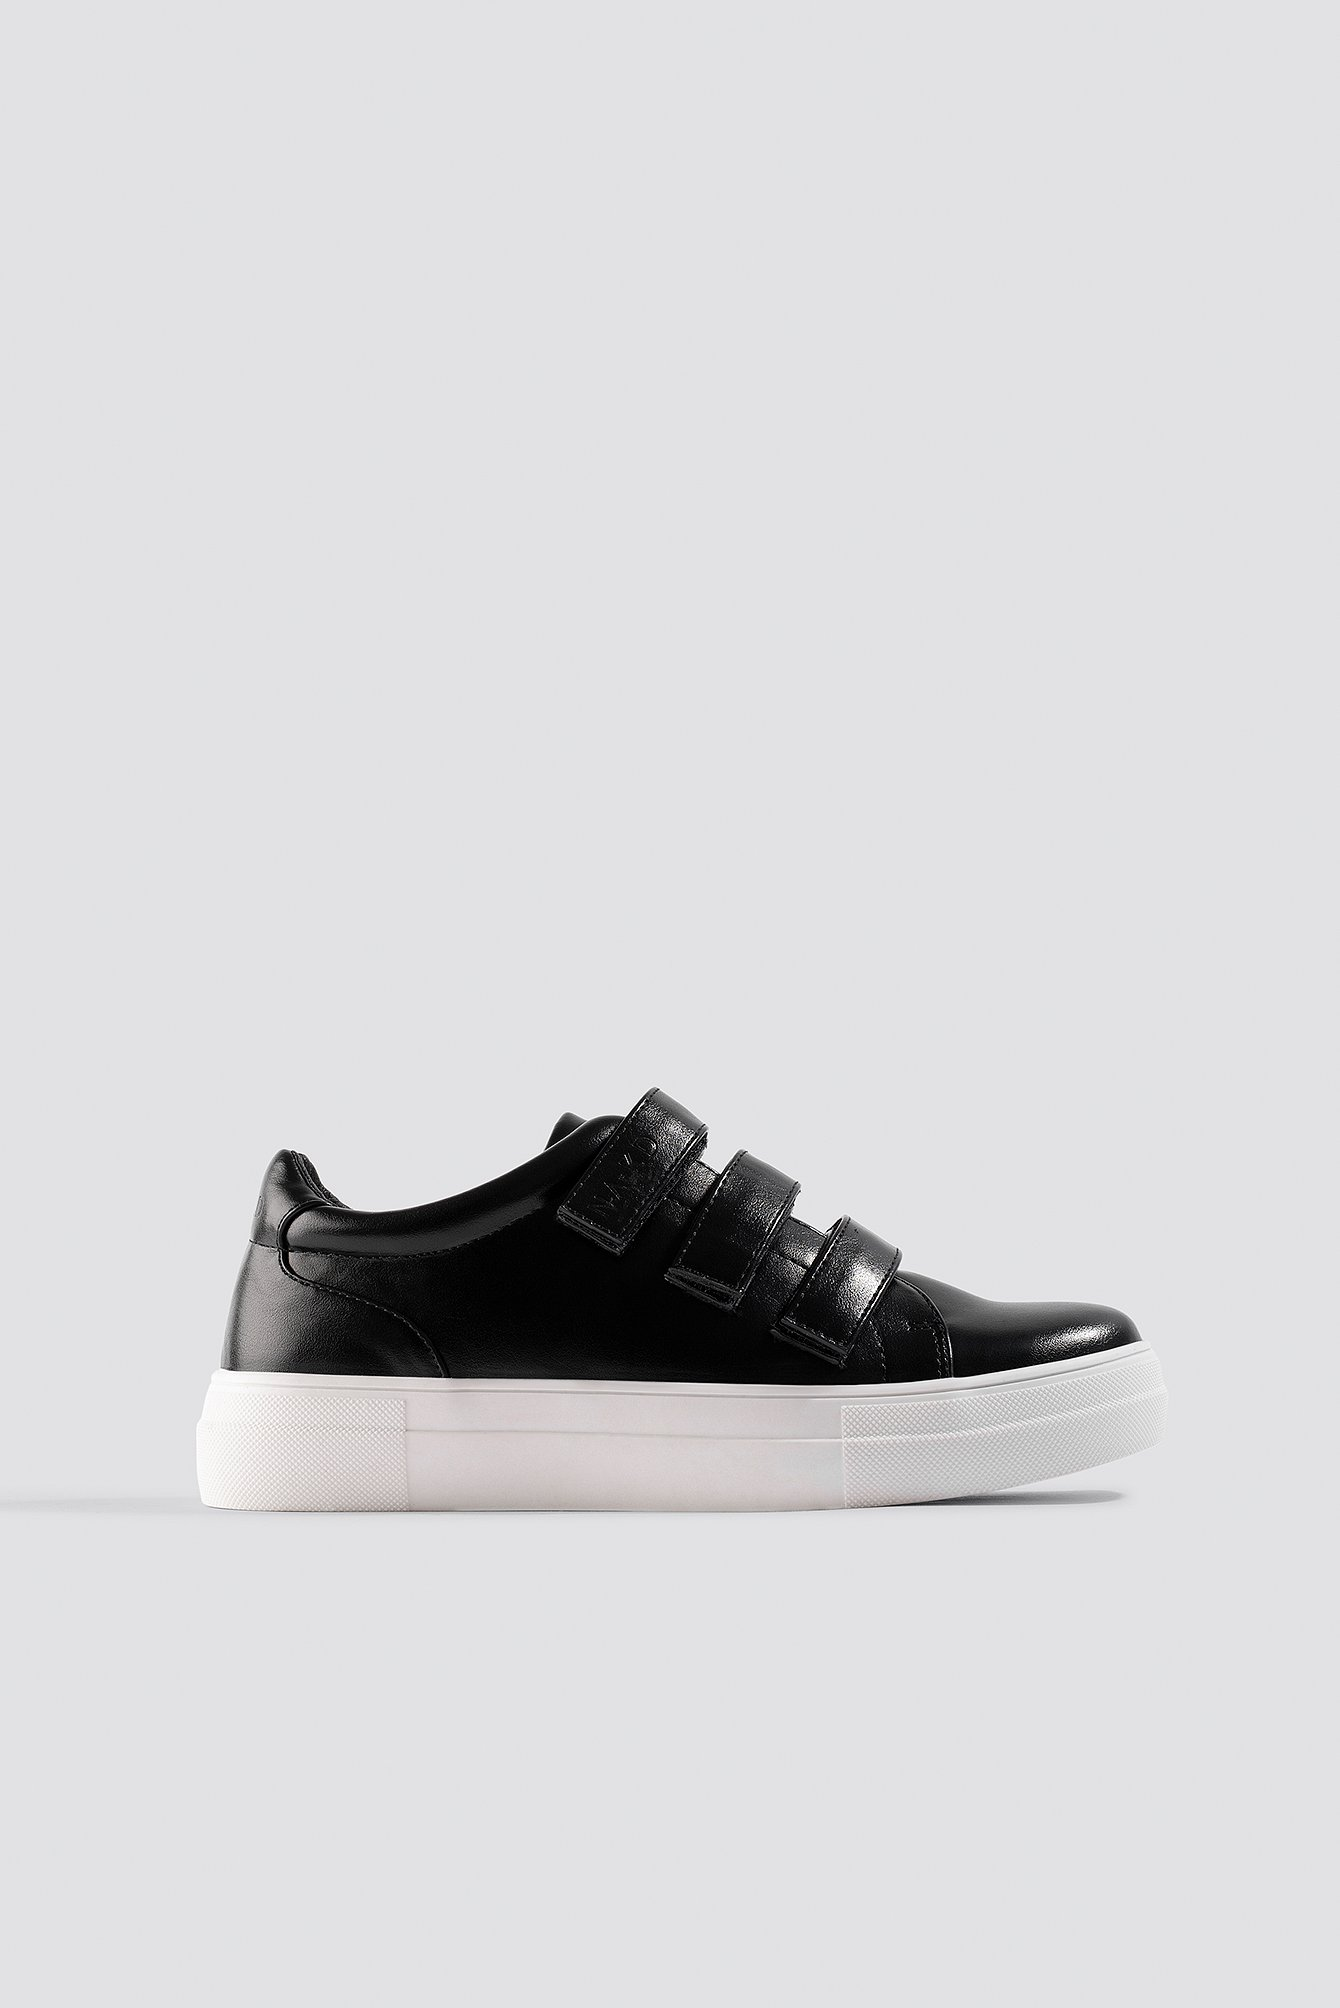 NA-KD Shoes Velcro Sneakers - Black